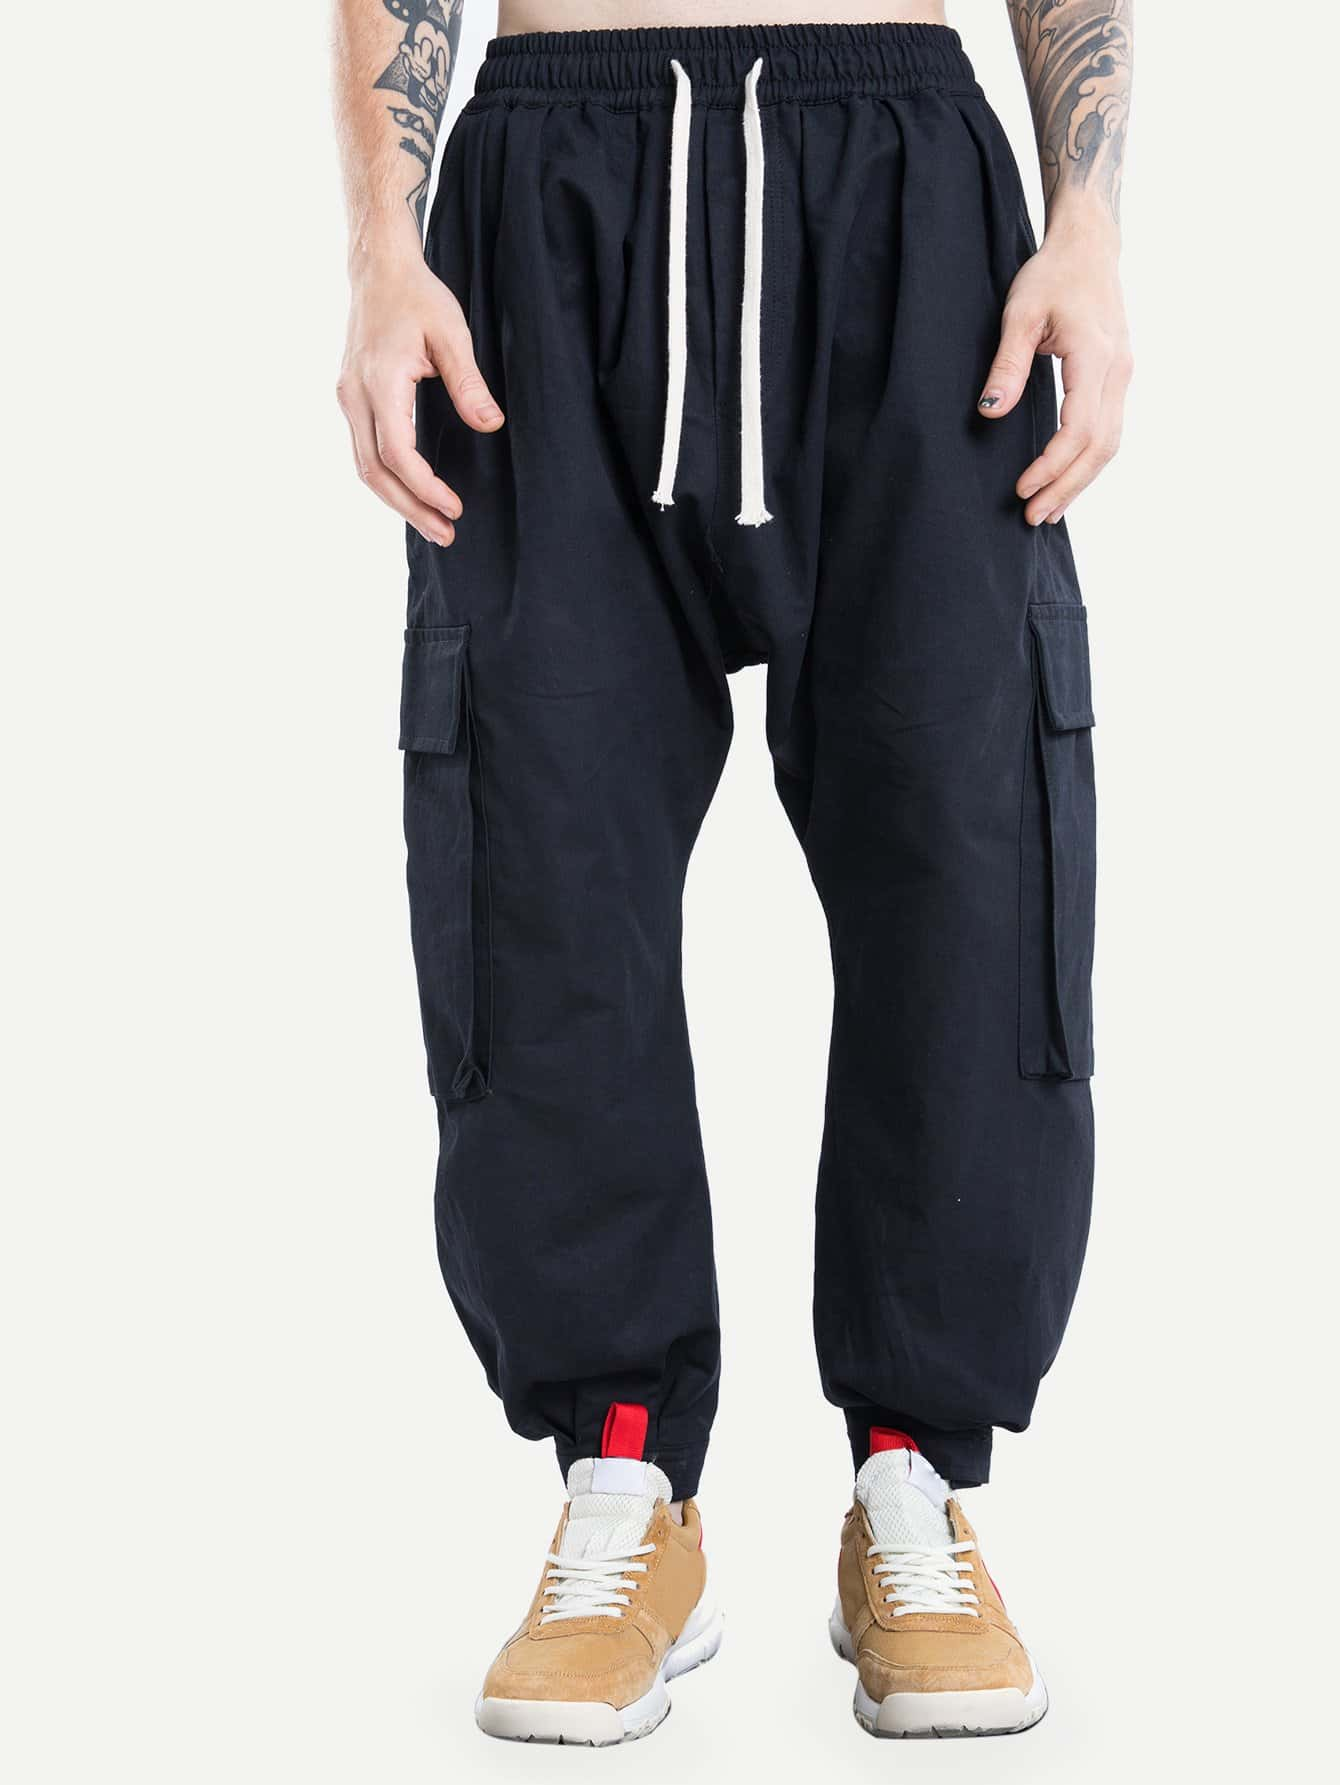 Men Pocket Decoration Drawstring Harem Pants набор раскрась и собери 3d самолётик 42904